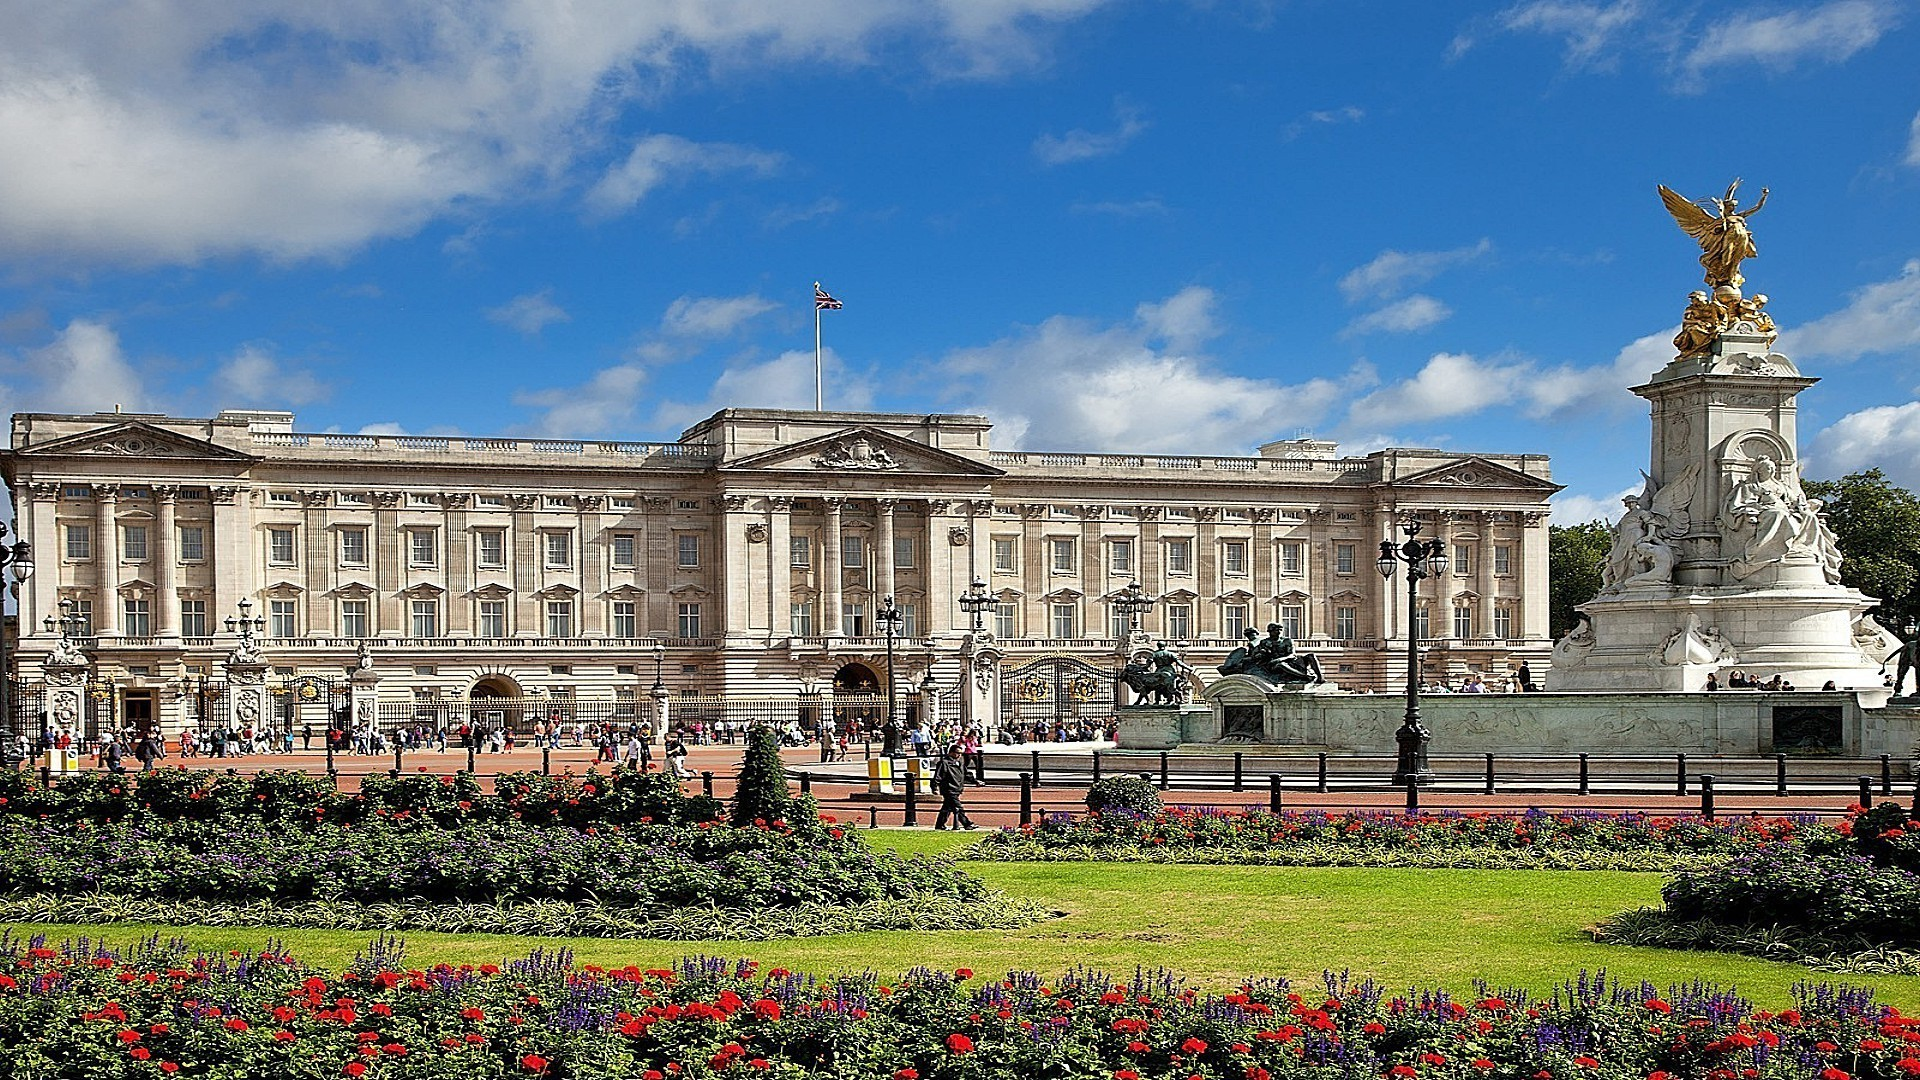 Buckingham Palace, London, England загрузить